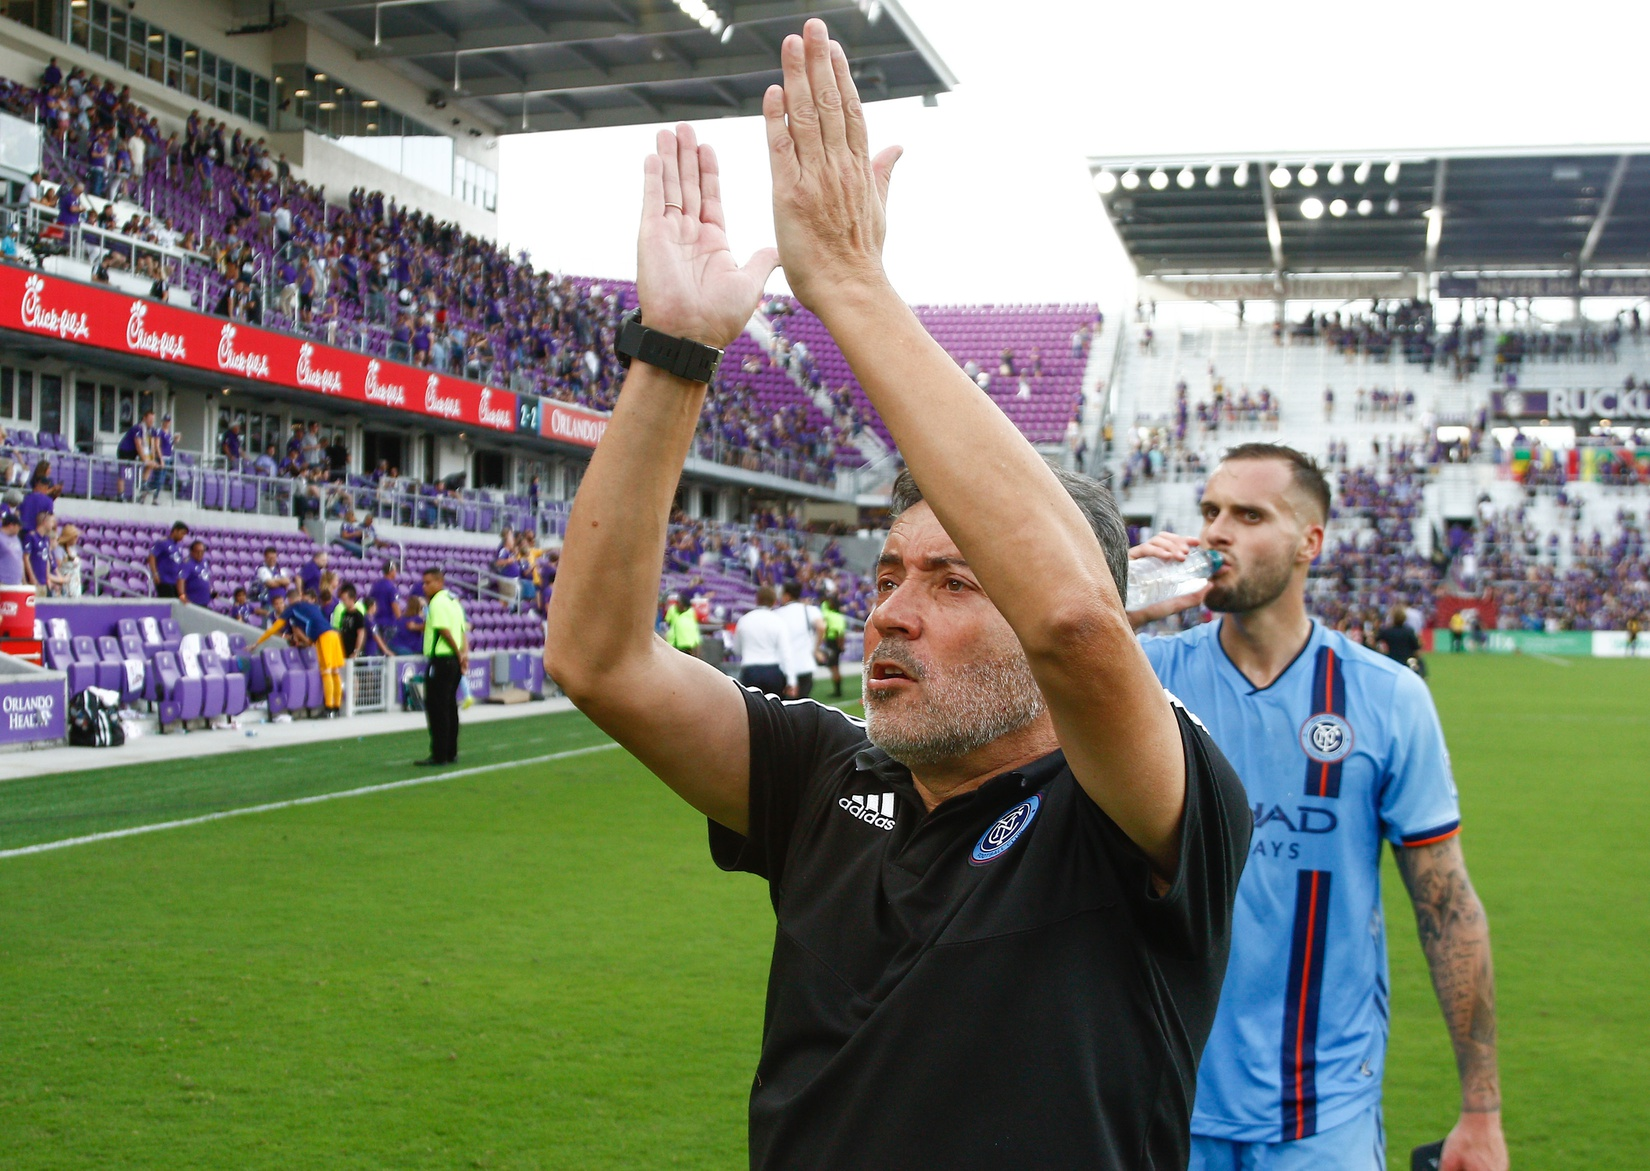 Mar 2, 2019; Orlando, FL, USA; New York City FC coach Domenec Torrent applauds his fans as he leaves the field following a soccer match against the Orlando City FC at Orlando City Stadium. Mandatory Credit: Reinhold Matay-USA TODAY Sports